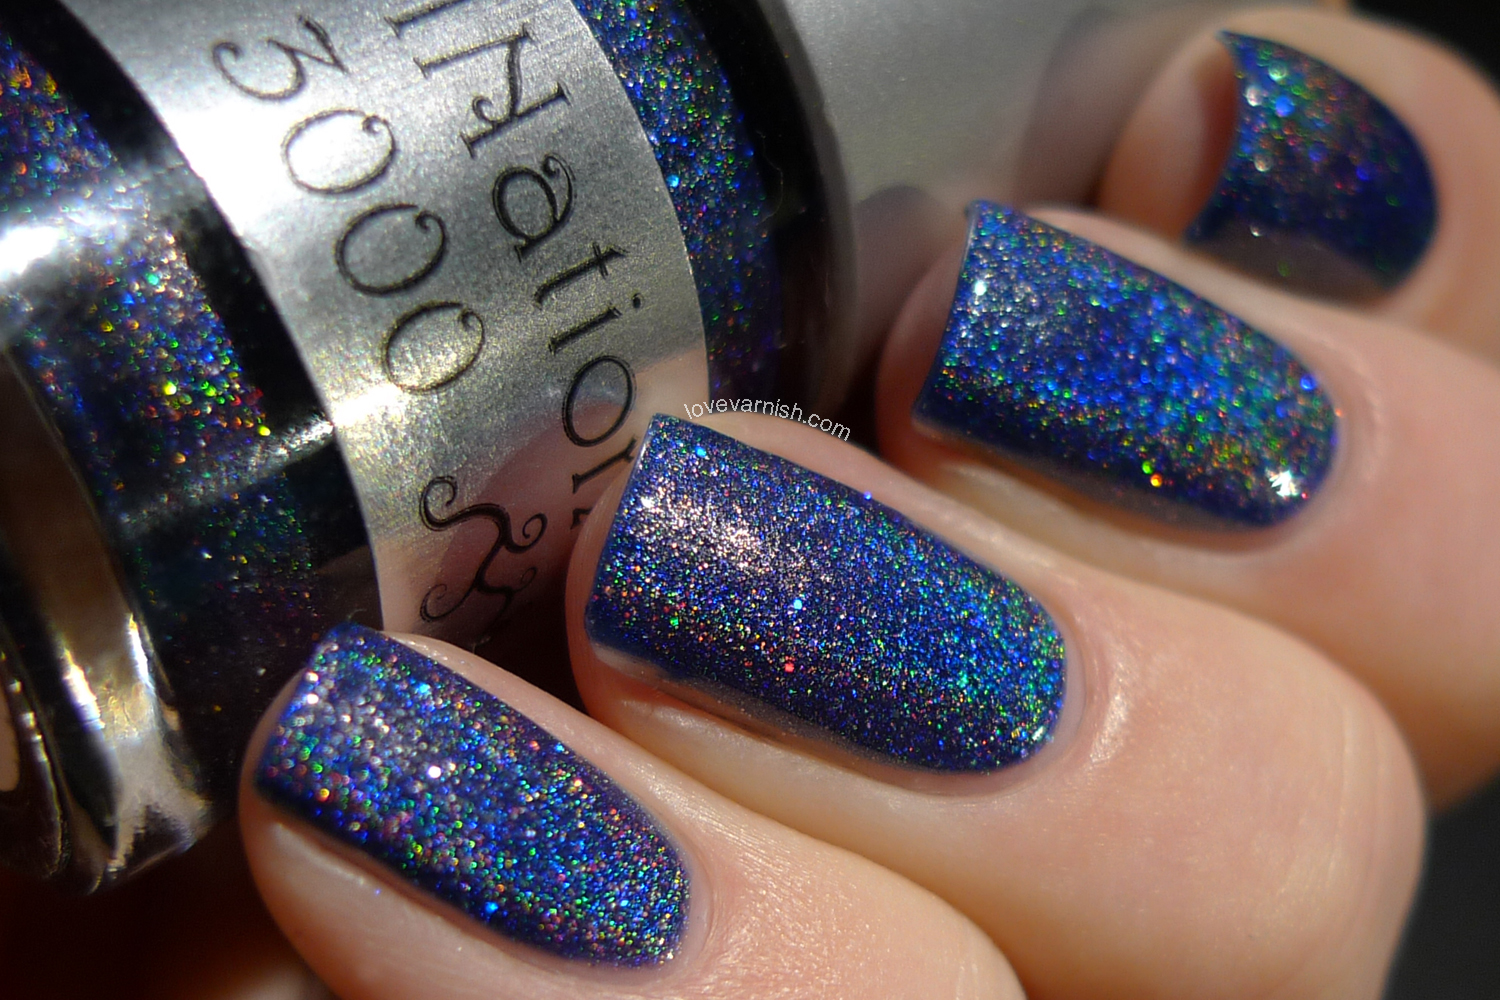 NailNation3000 Eve holographic blue nail polish